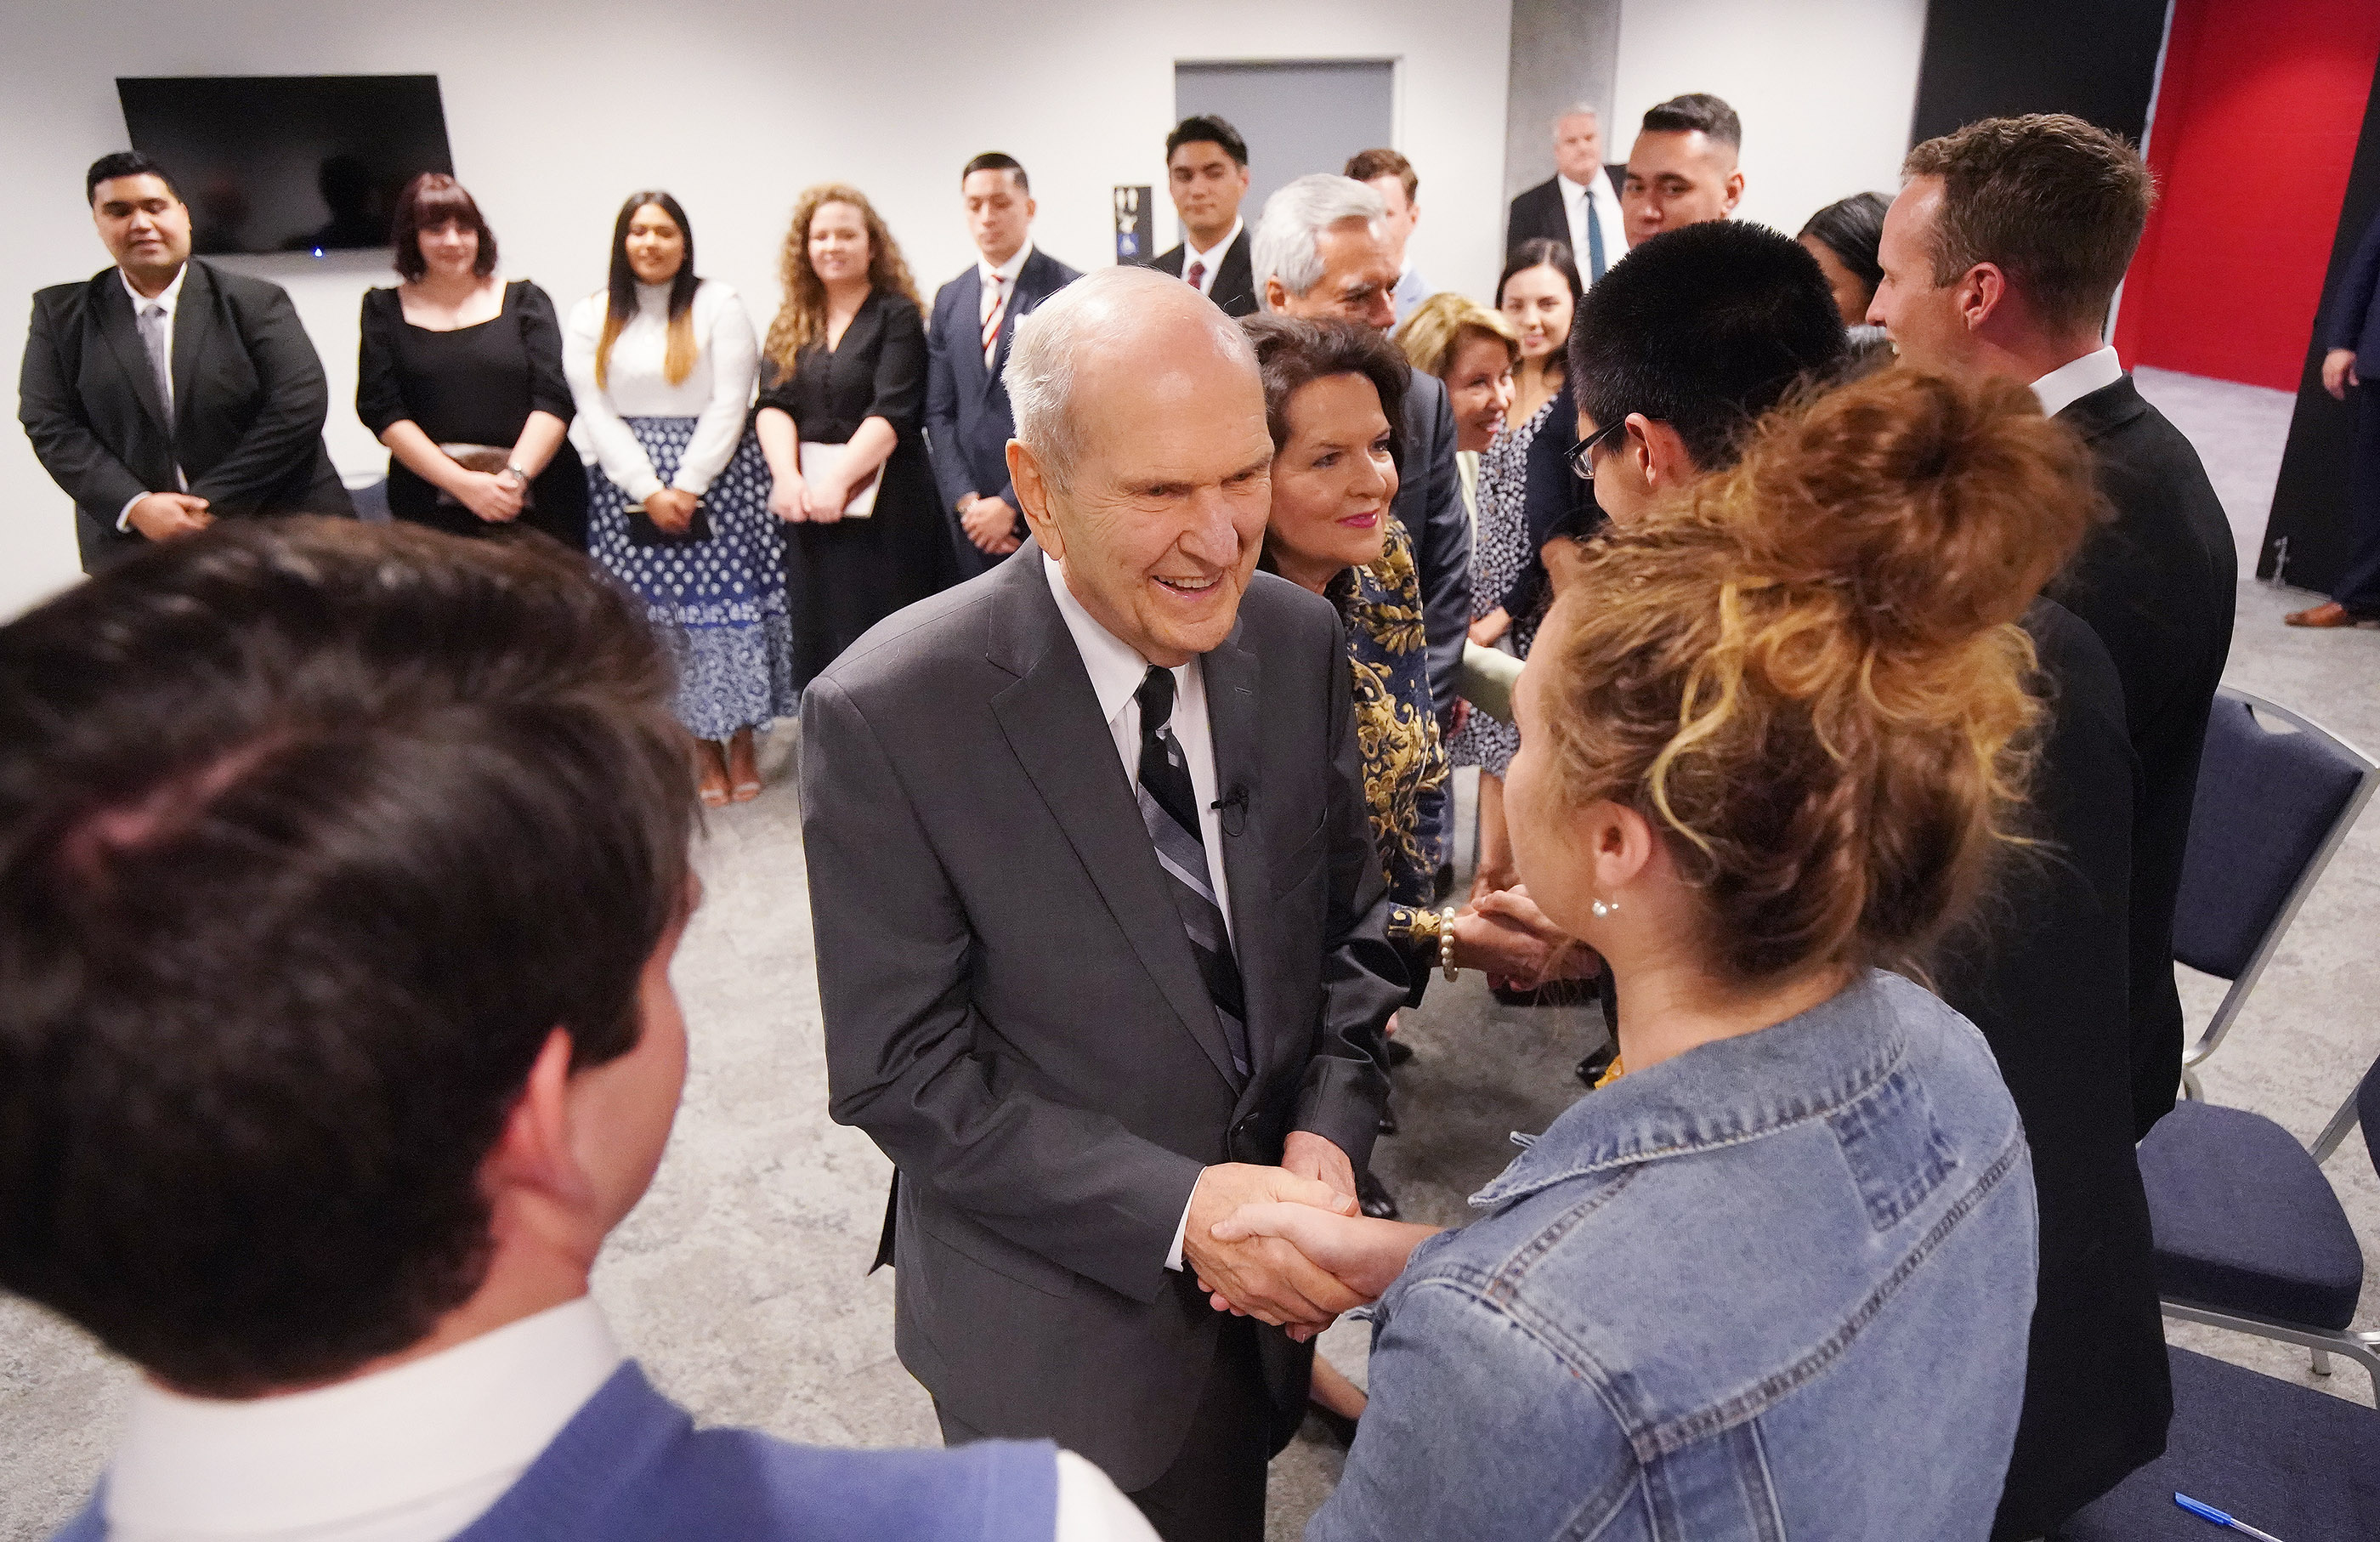 President Russell M. Nelson of The Church of Jesus Christ of Latter-day Saints and his wife, Sister Wendy Nelson, meet with youth during a meeting on May 19, 2019, in Sydney, Australia.